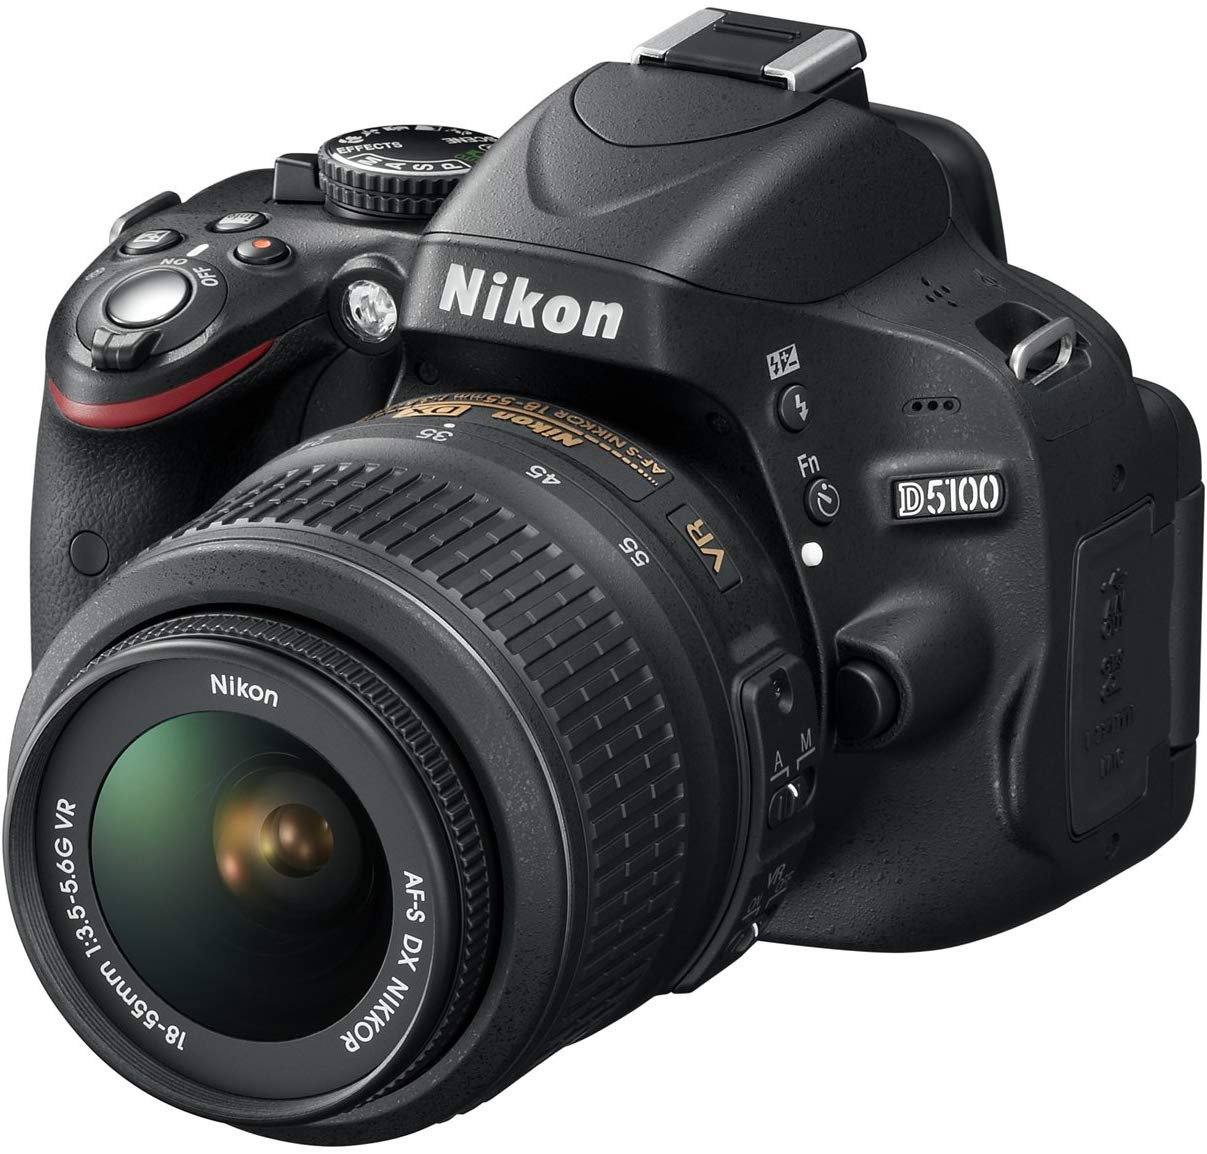 Why the Nikon D5100 is the Perfect Entry-Level Camera